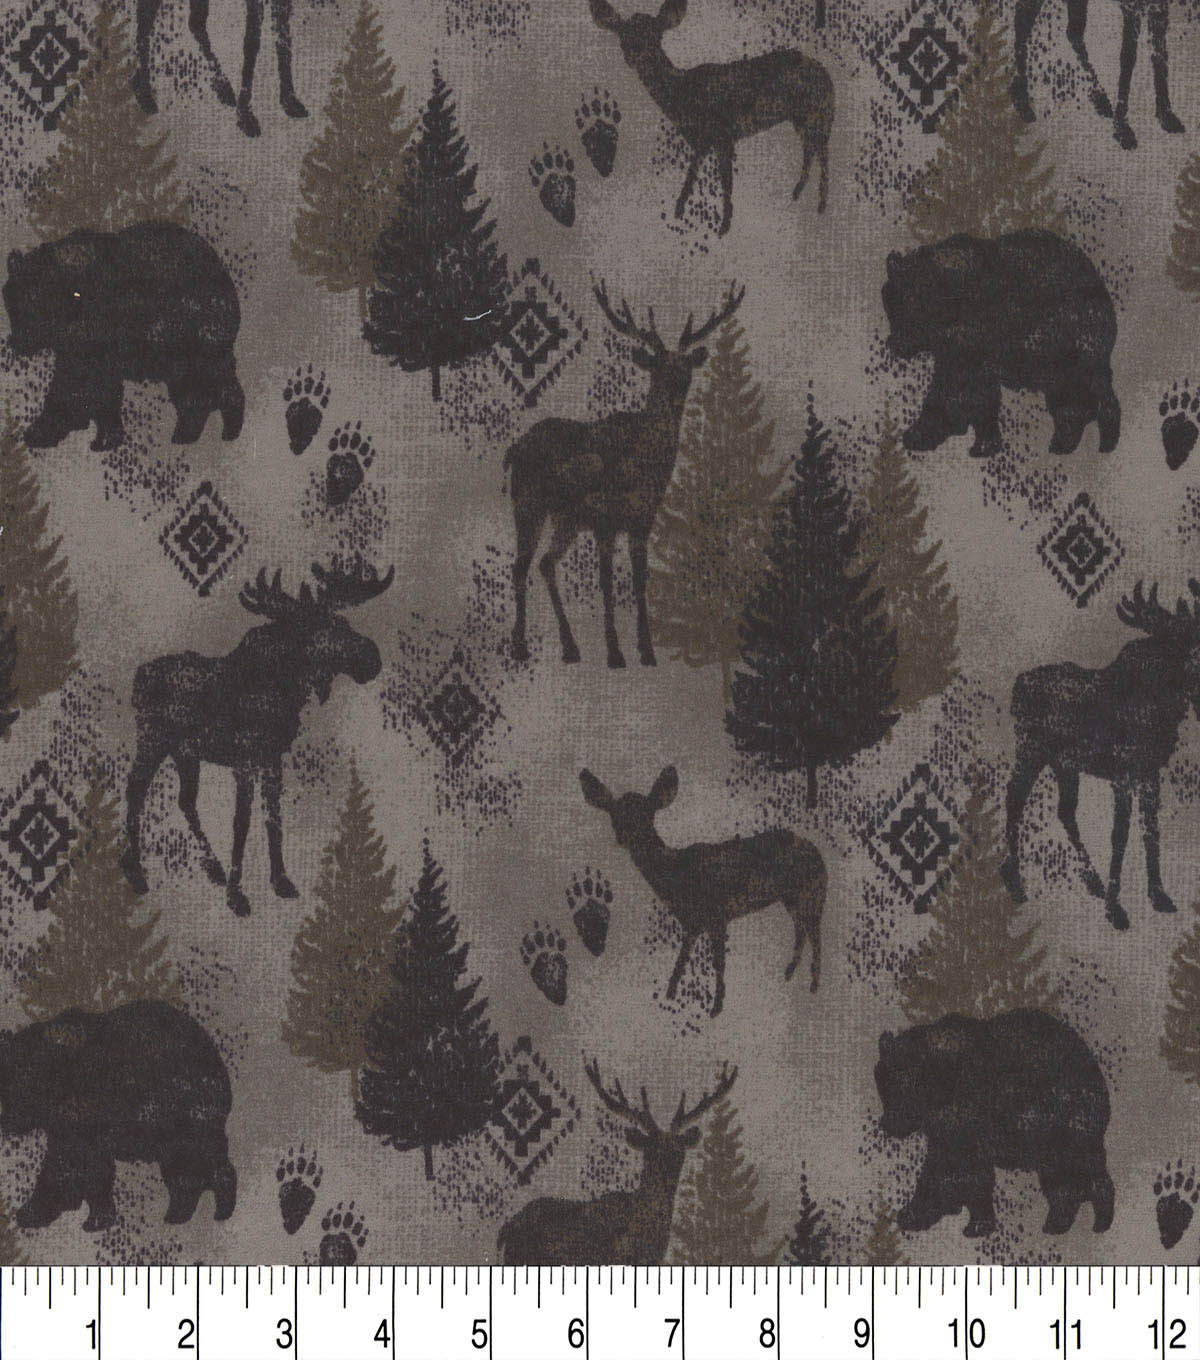 Snuggle Flannel Fabric -Distressed Wilderness Brown